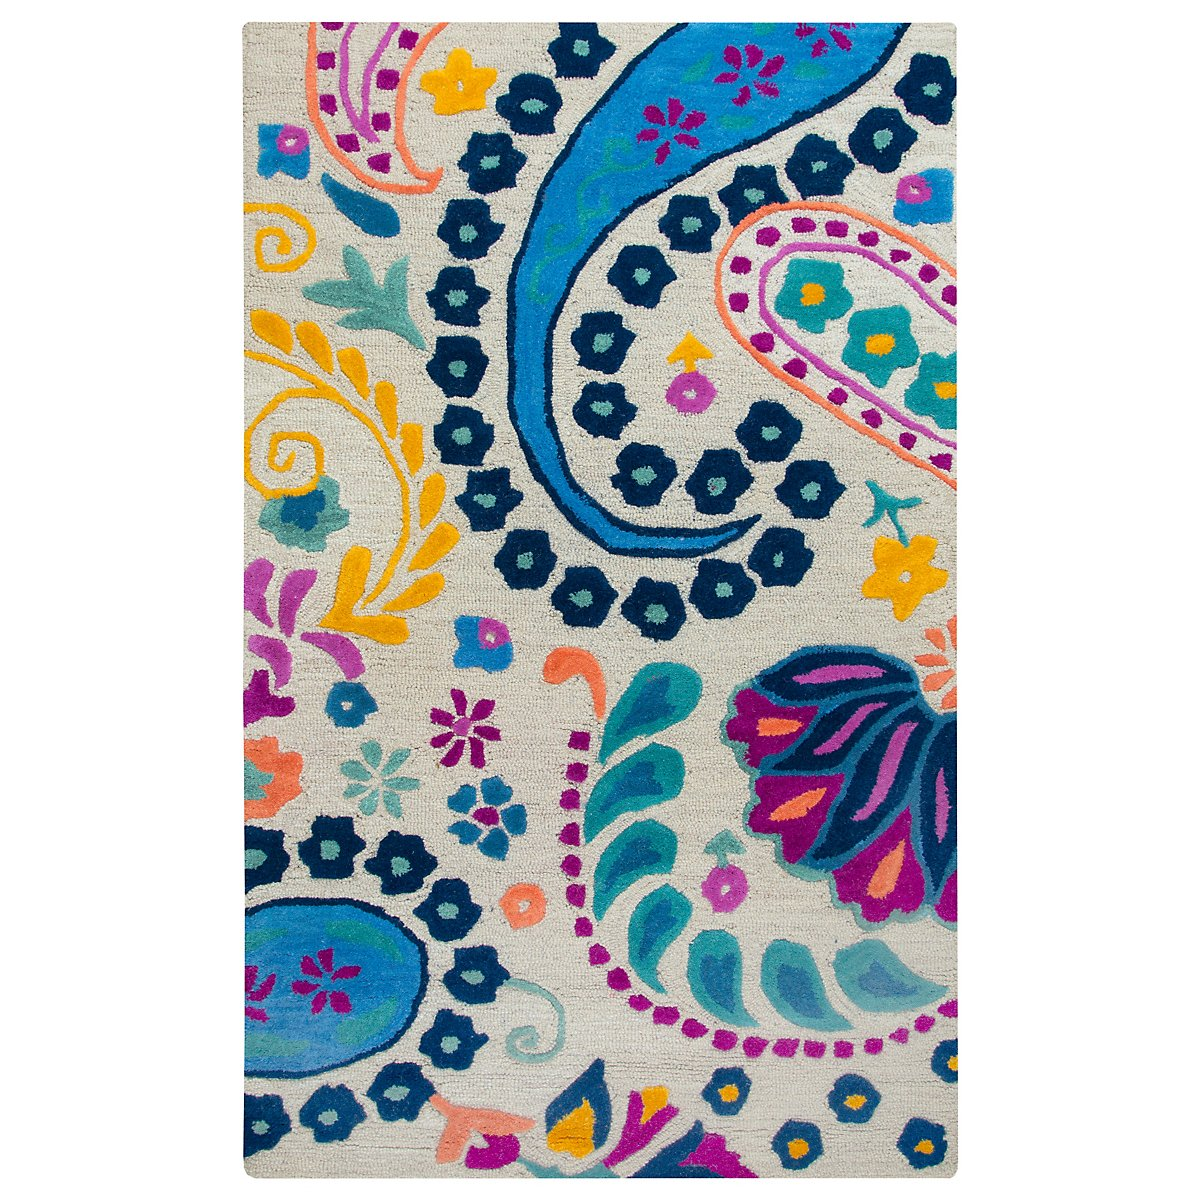 Paisley Multicolored Wool 3x5 Area Rug